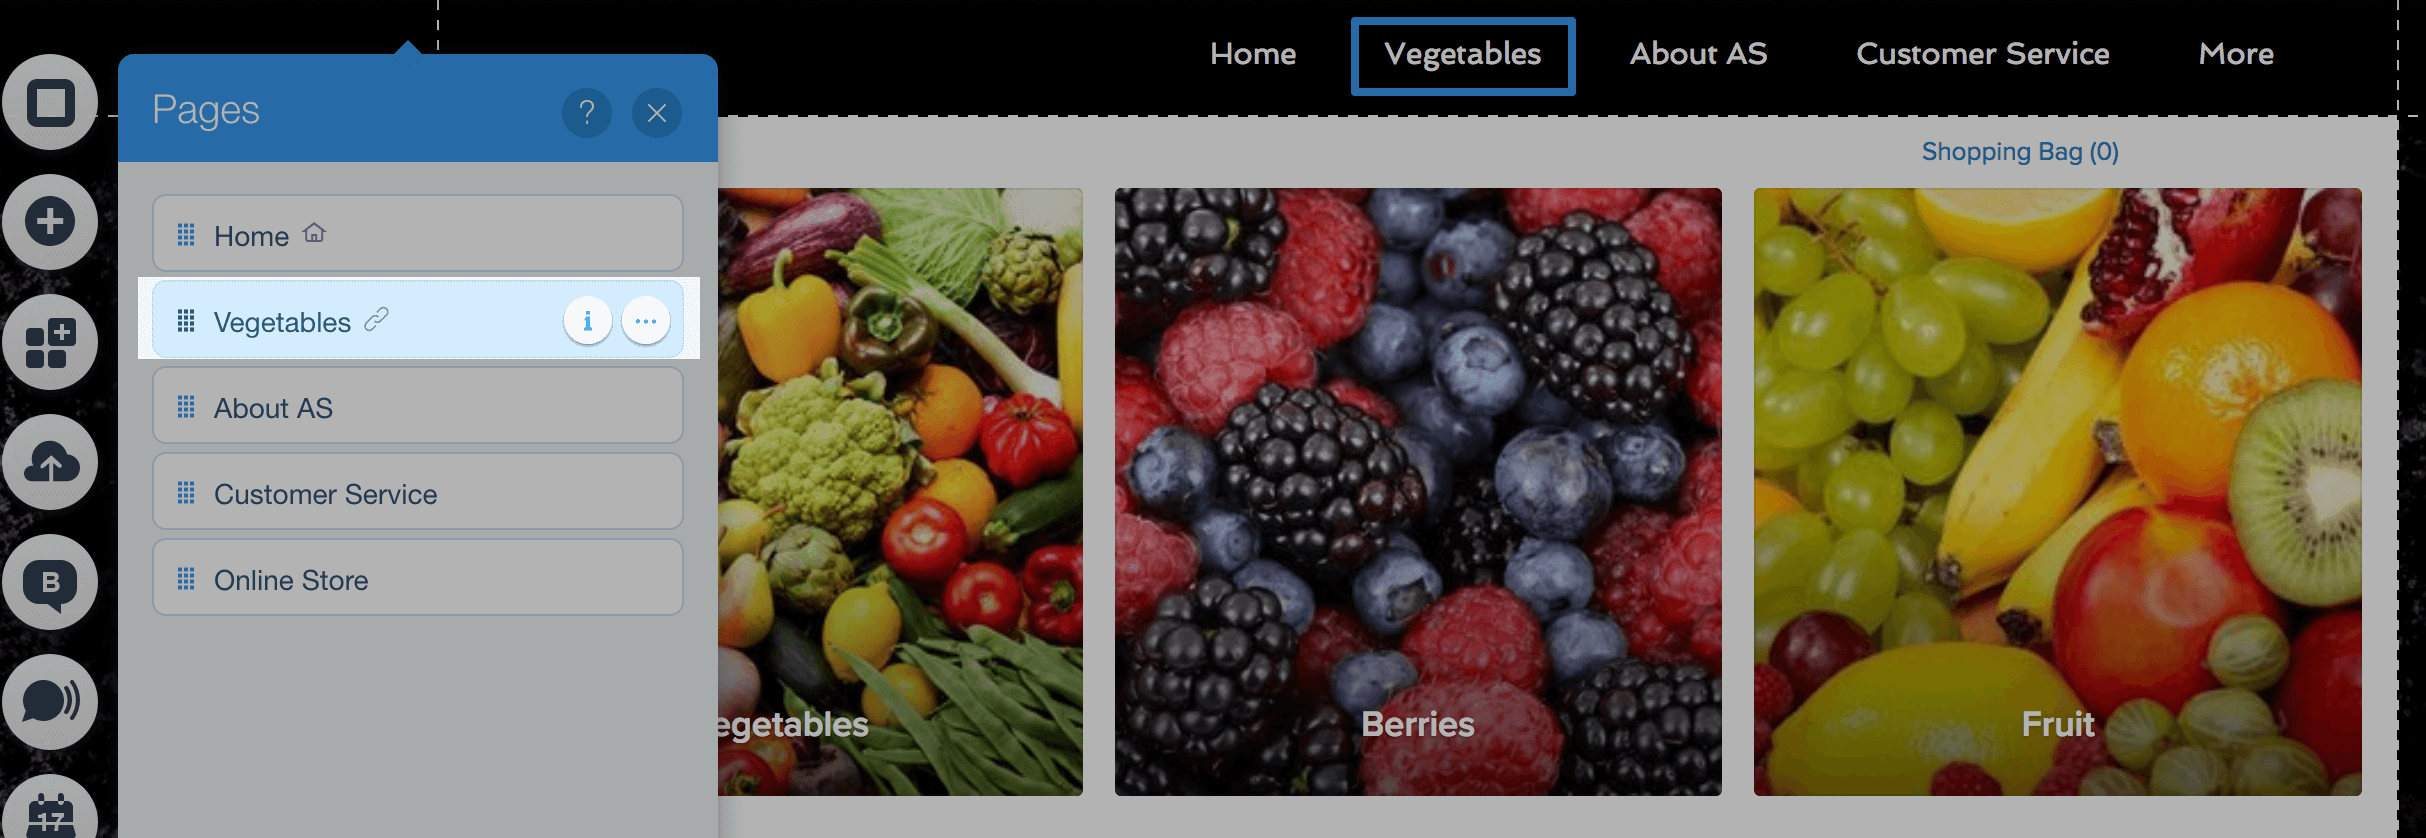 Category added to menu on Wix